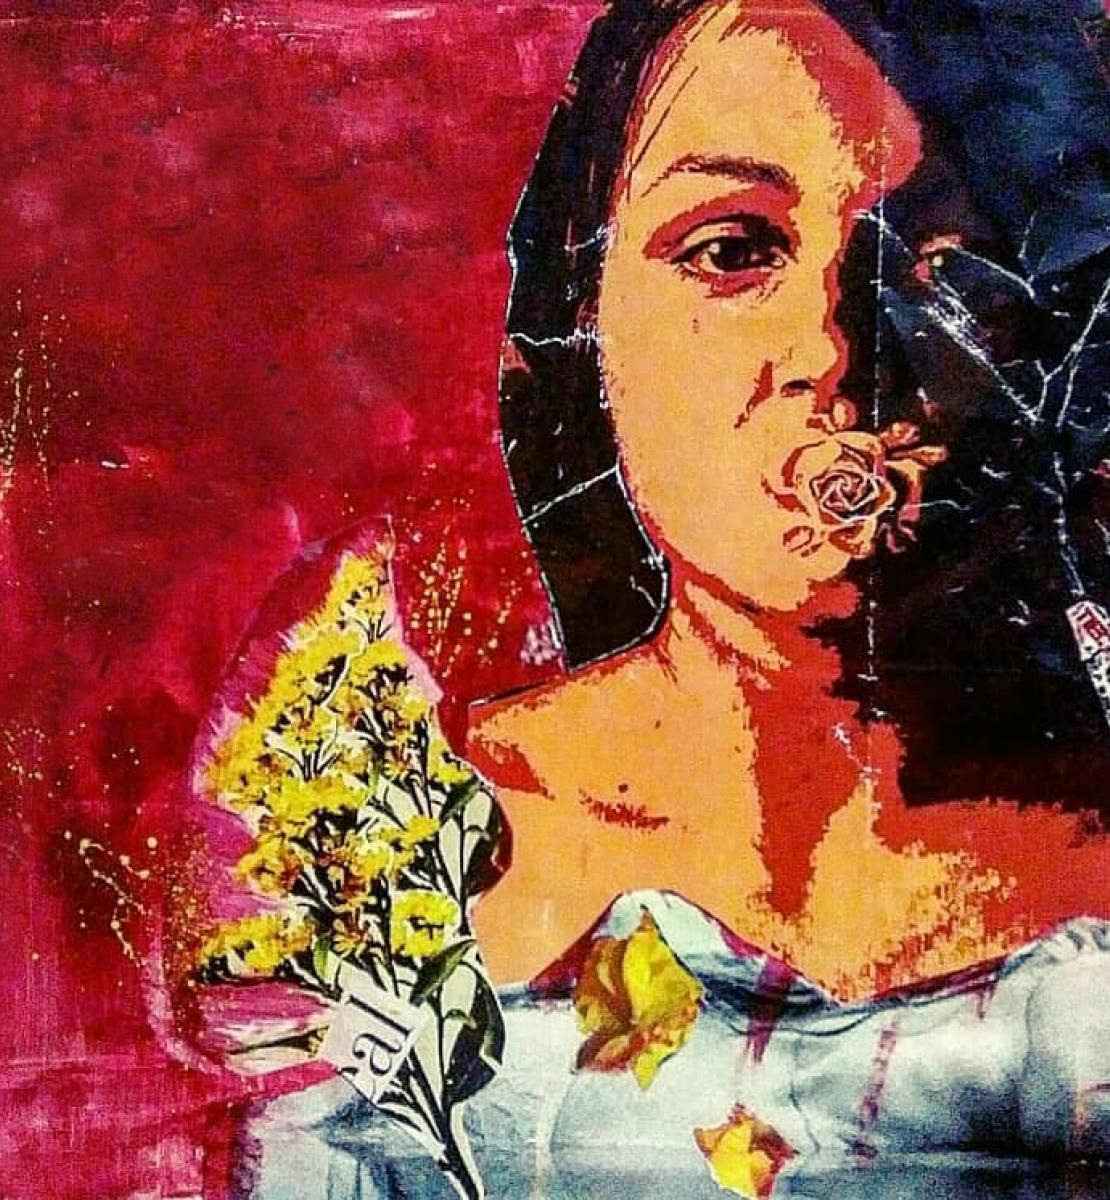 Artwork shows a collage of a girls face, a hand painted with the words stop and an image of a woman laying across the canvas.